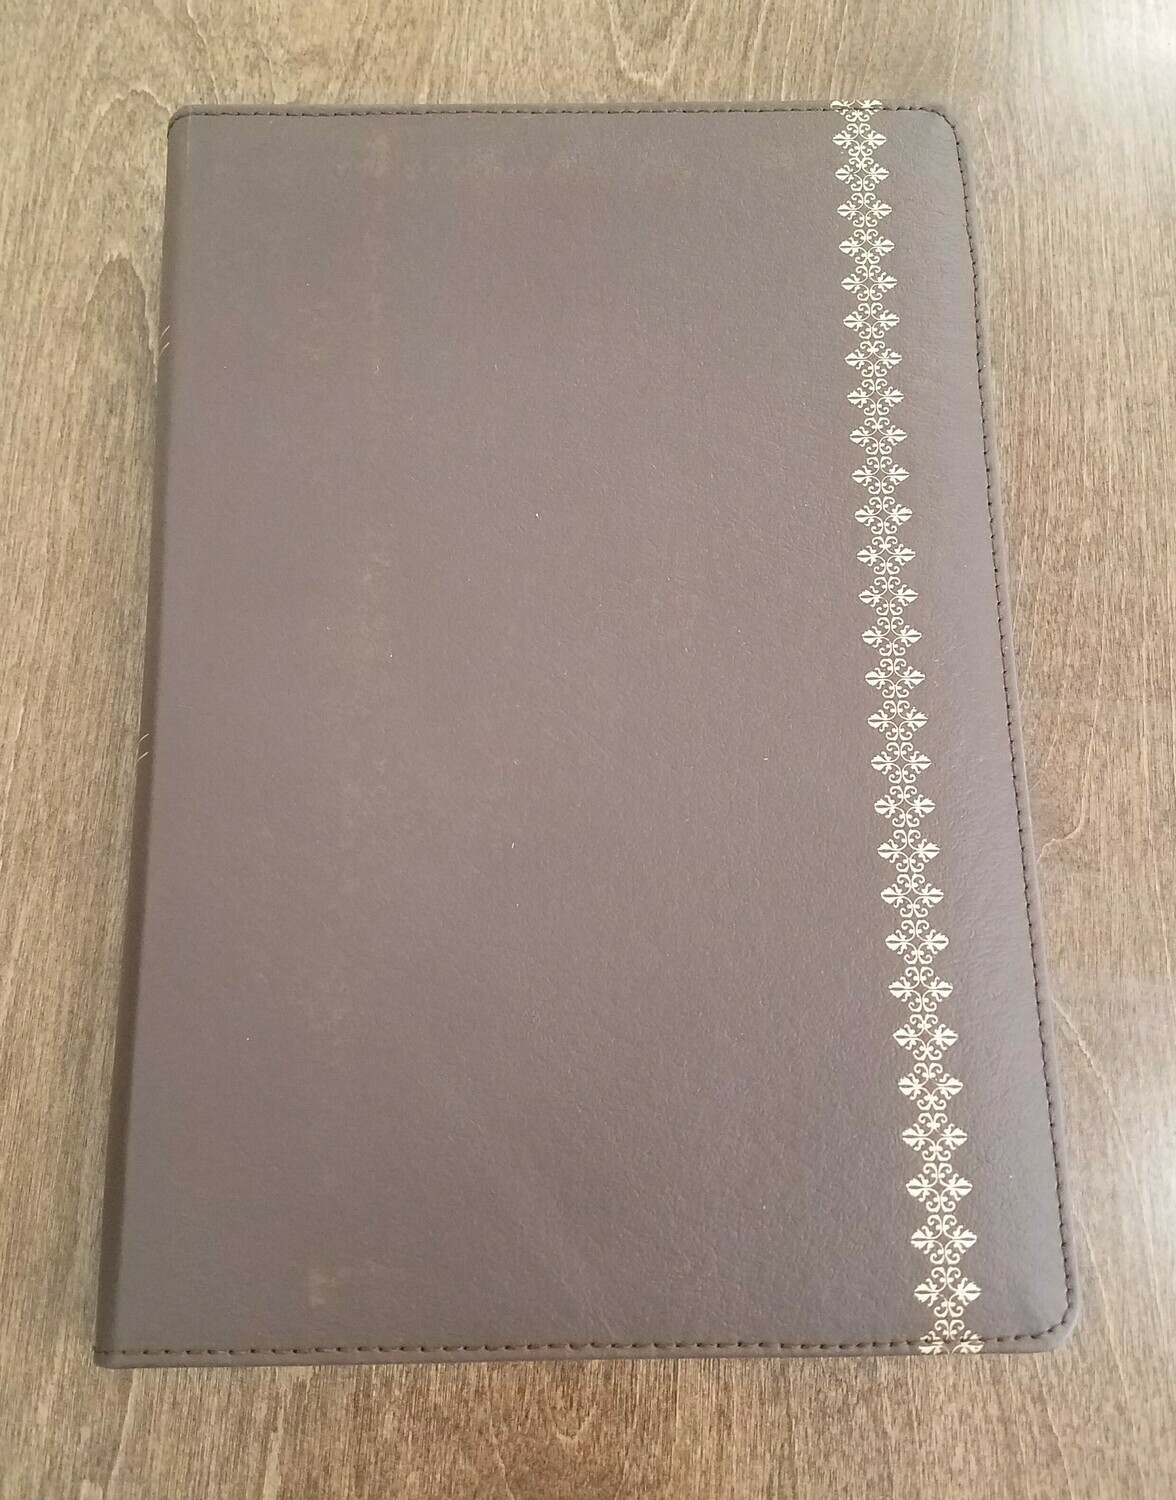 NKJV Study Bible for Women - Cocoa Leather